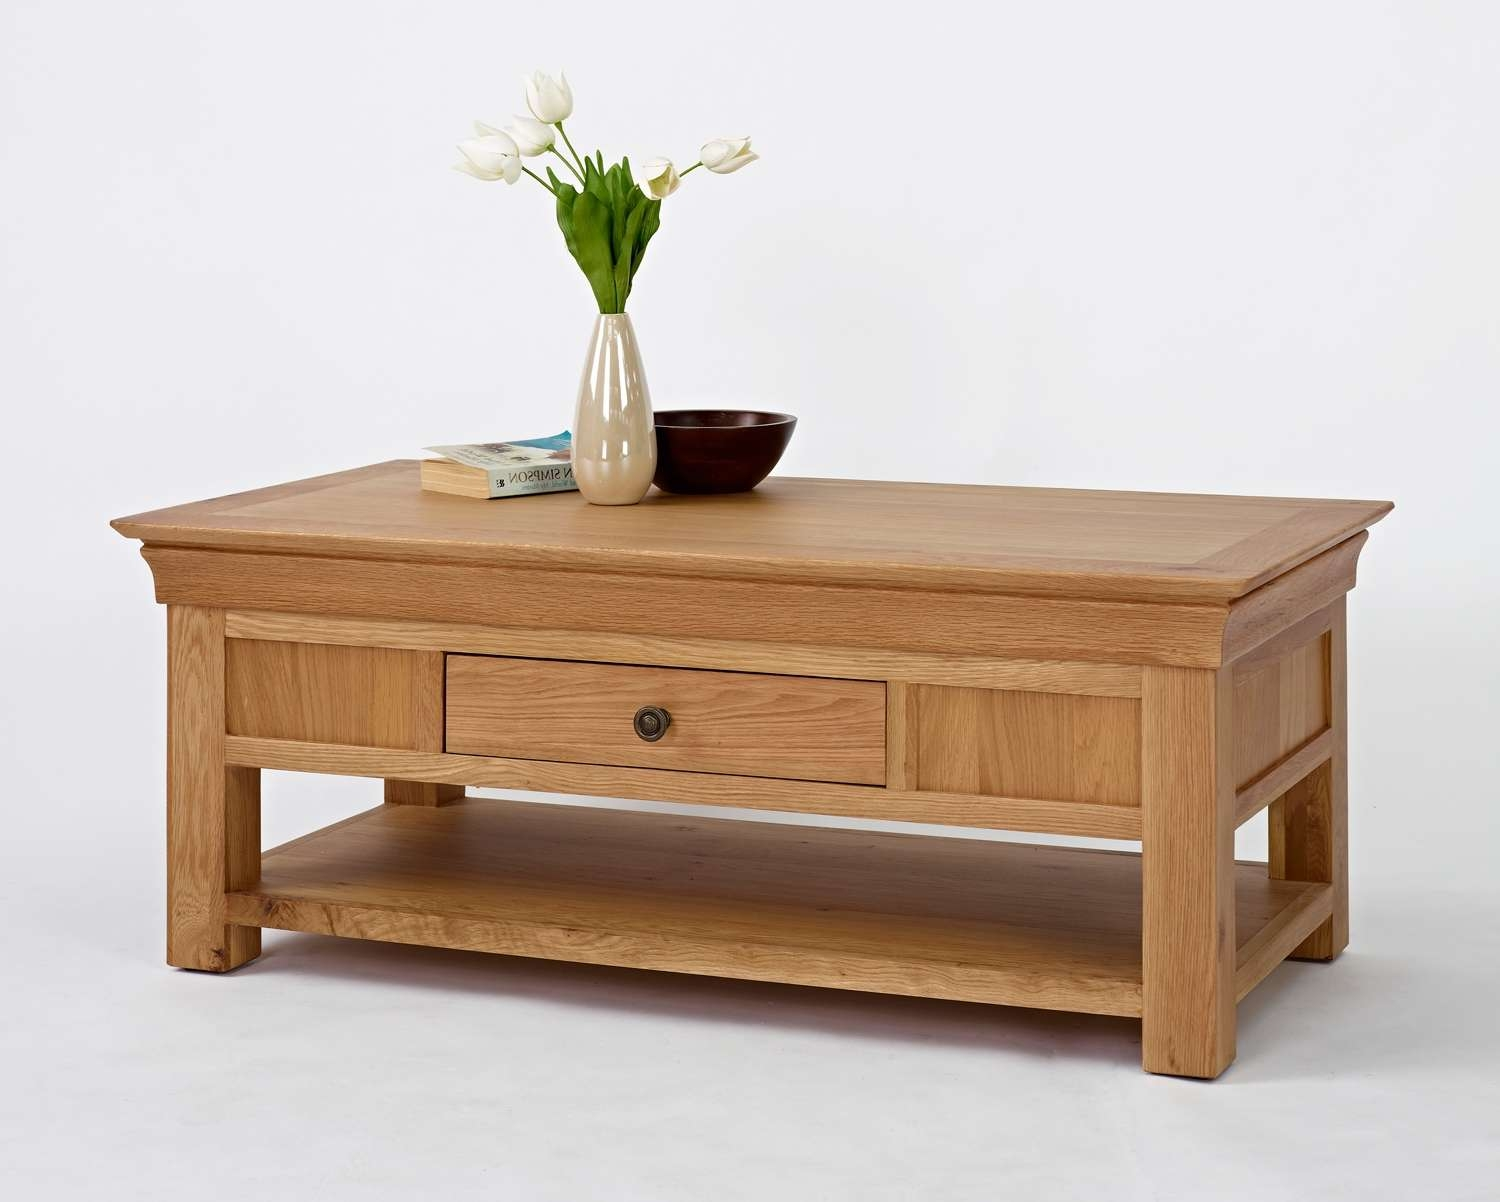 Dream Table Furniture For Widely Used Low Oak Coffee Tables (View 6 of 20)